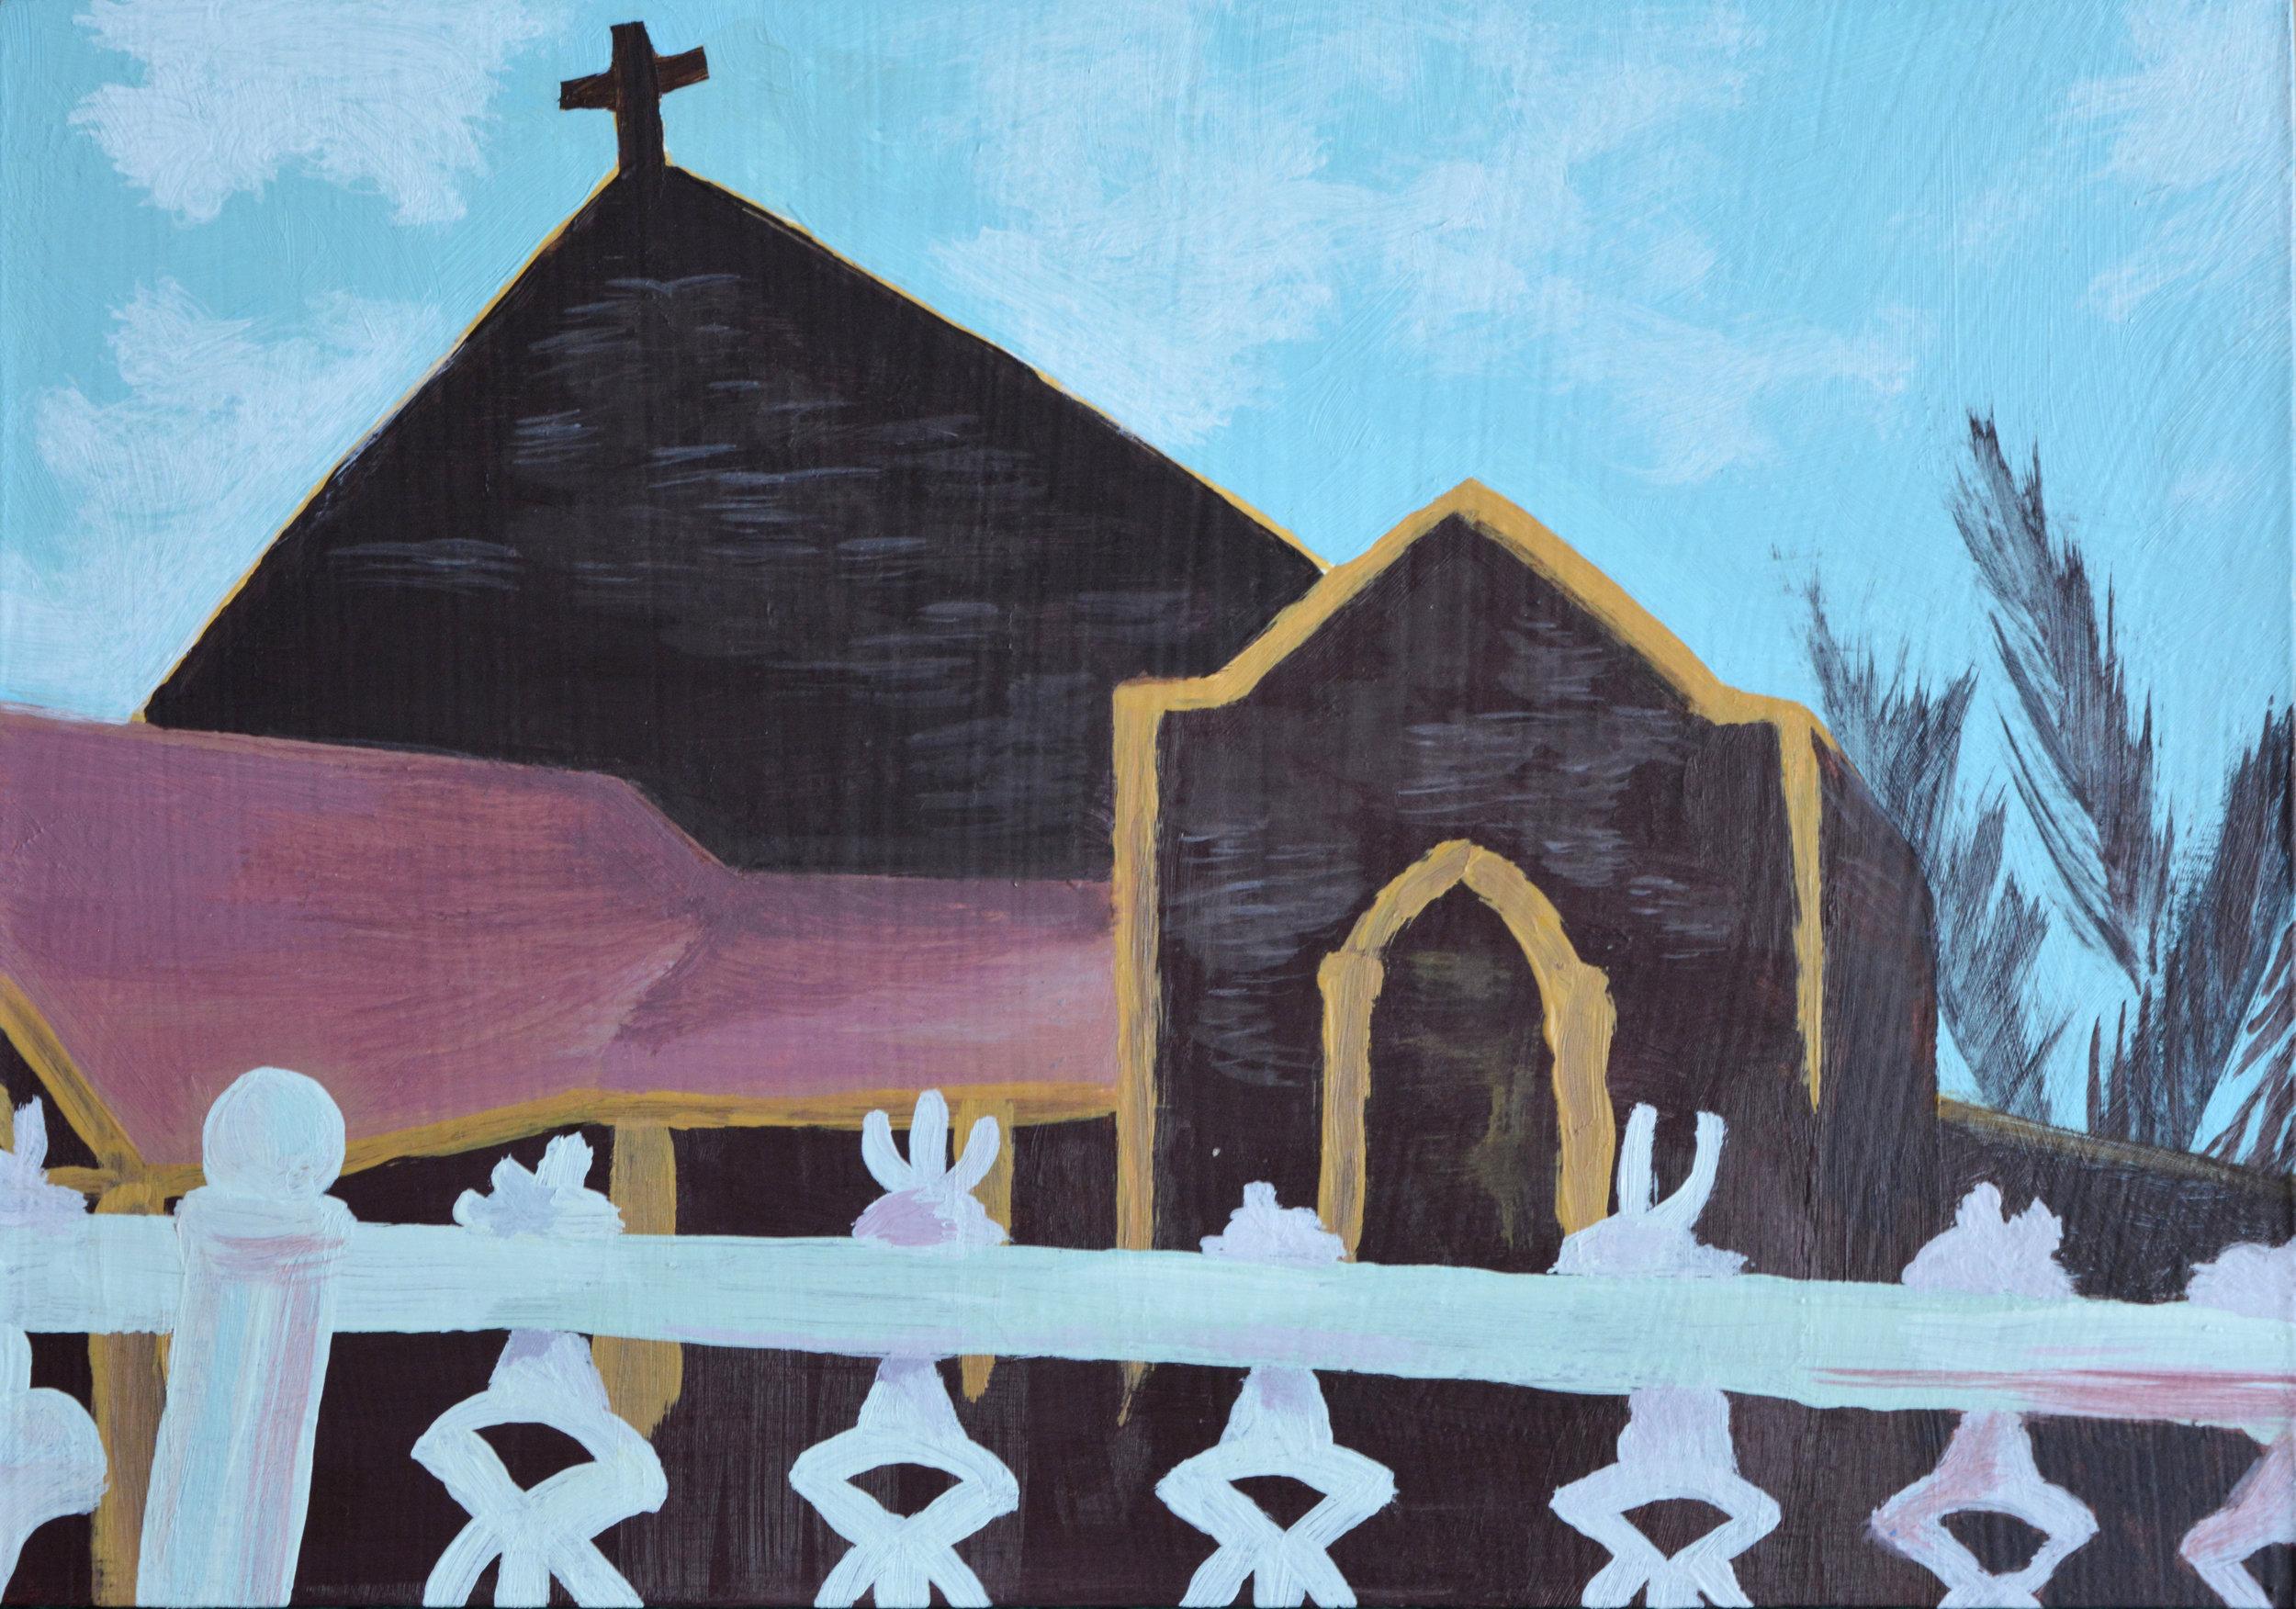 Small Chapel  5 x 7 inches, acrylic on wood panel, 2018